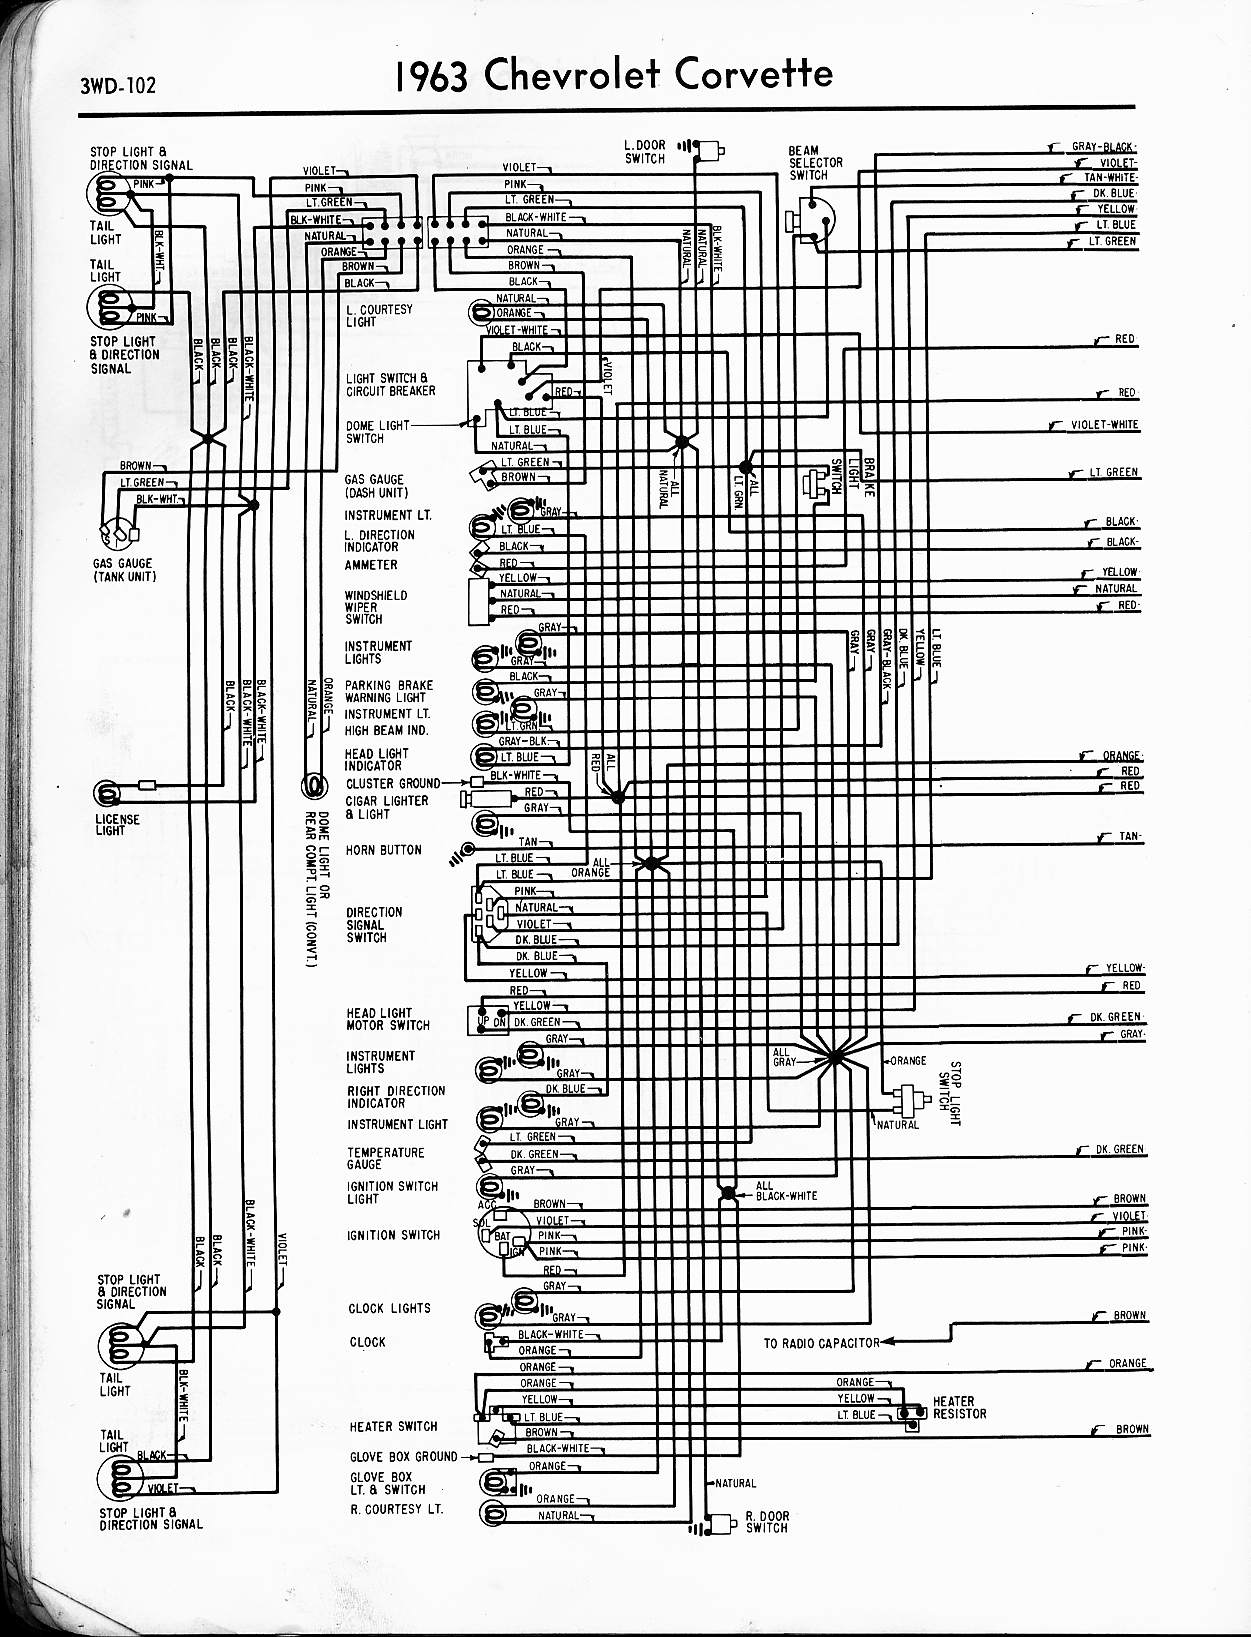 57 65 Chevy Wiring Diagrams 1960 Corvette Diagram 1963 Left